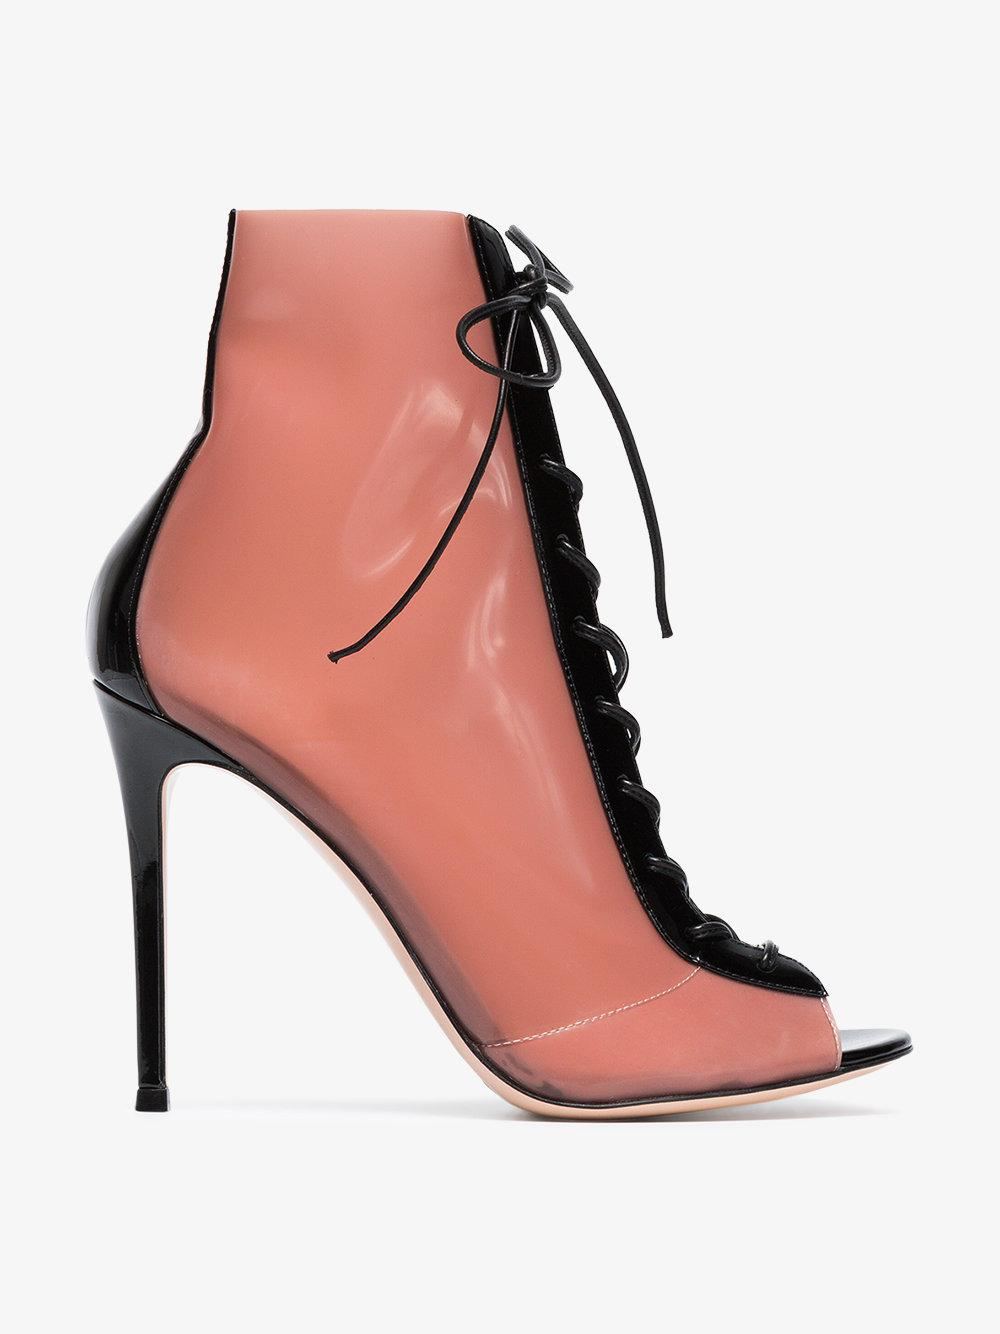 Gianvito Rossi Ree 105 ankle boots 1YoC8uL60